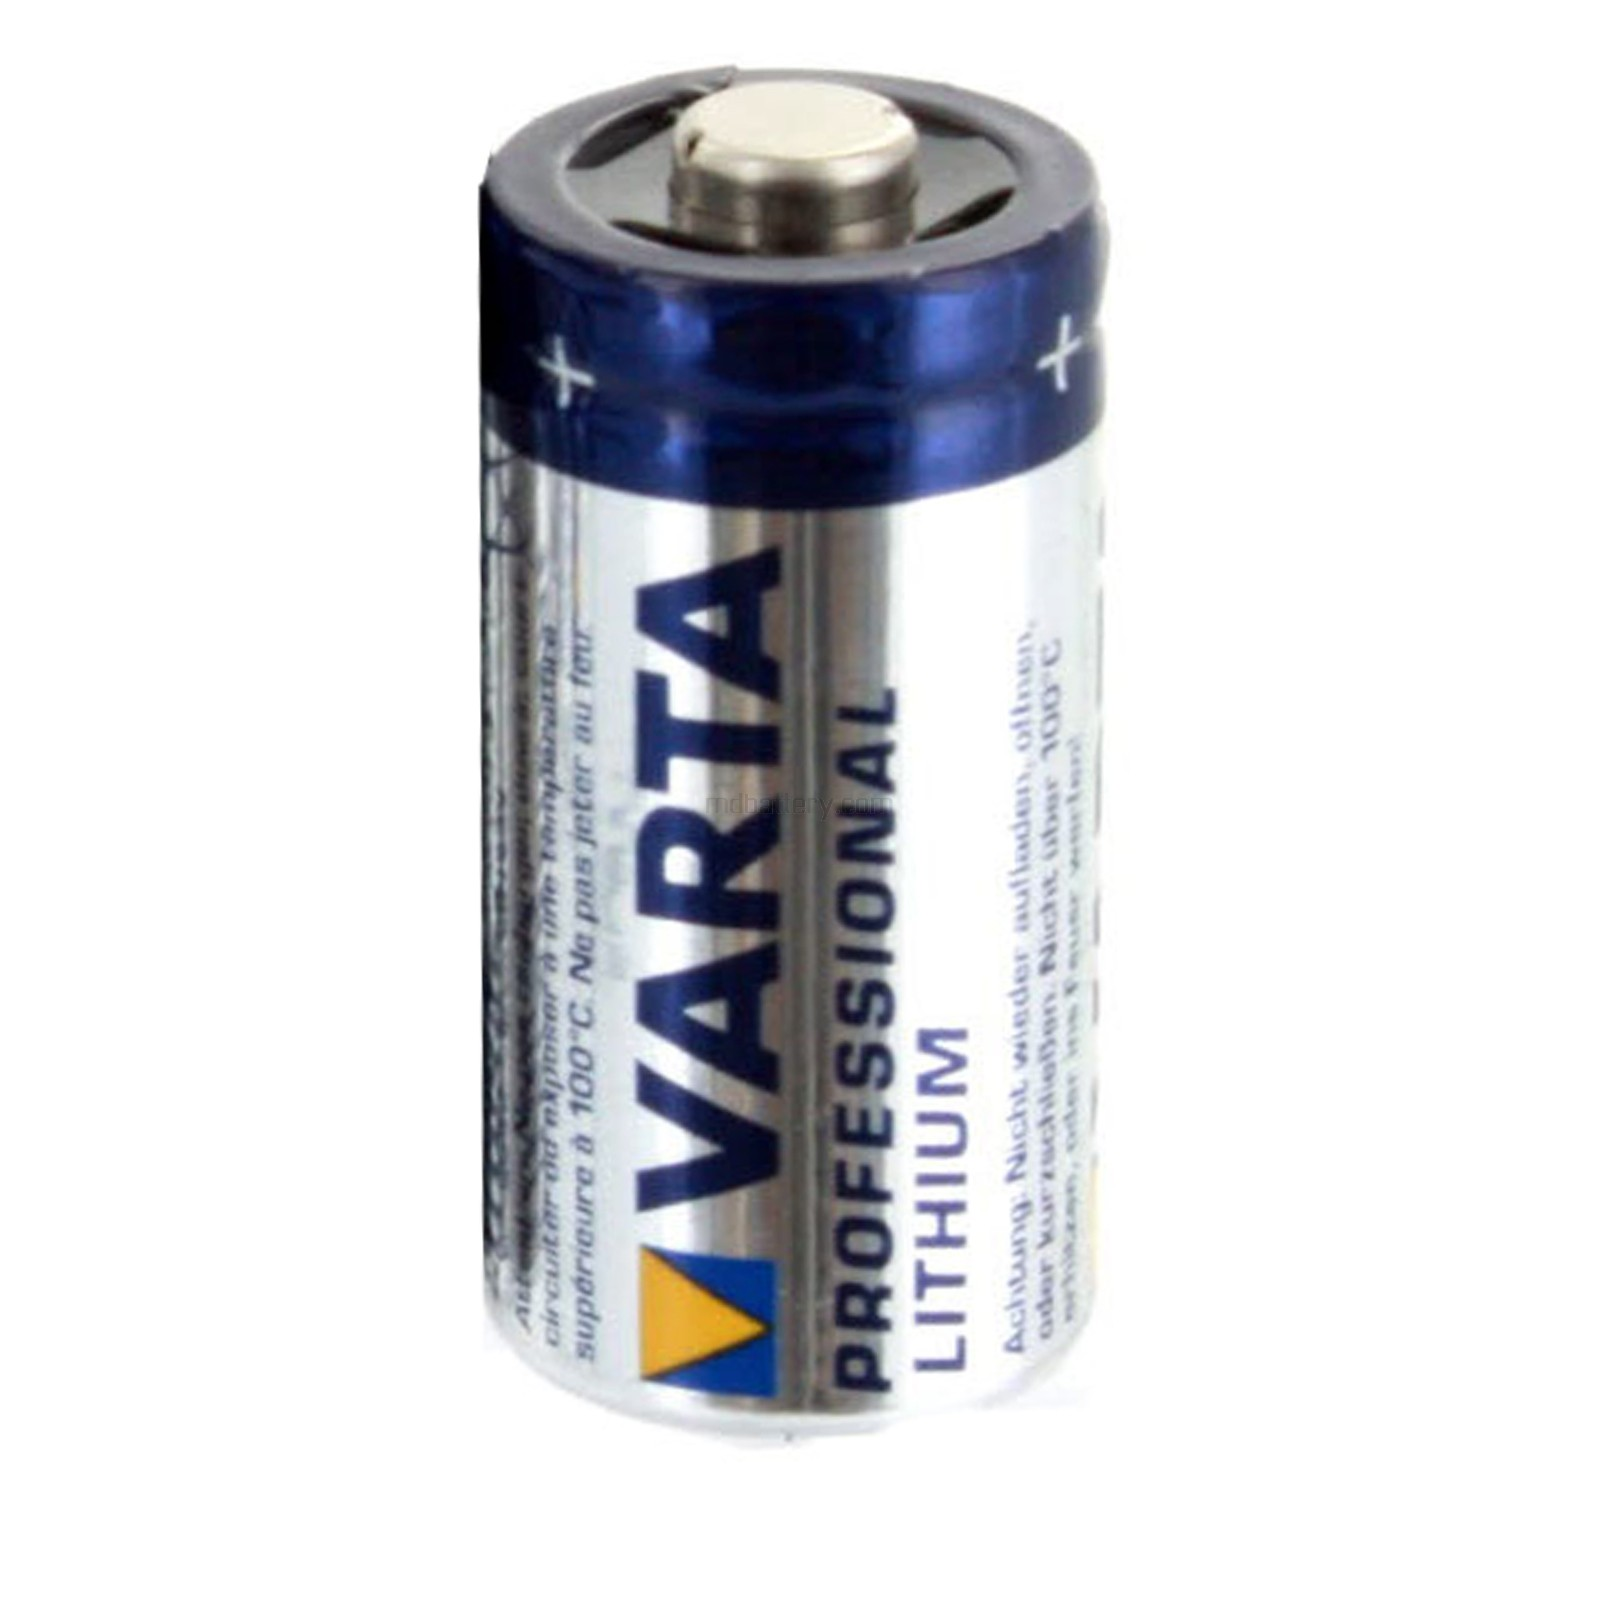 varta cr123a vcr123a 6205 2 3a 3v photo lithium battery. Black Bedroom Furniture Sets. Home Design Ideas